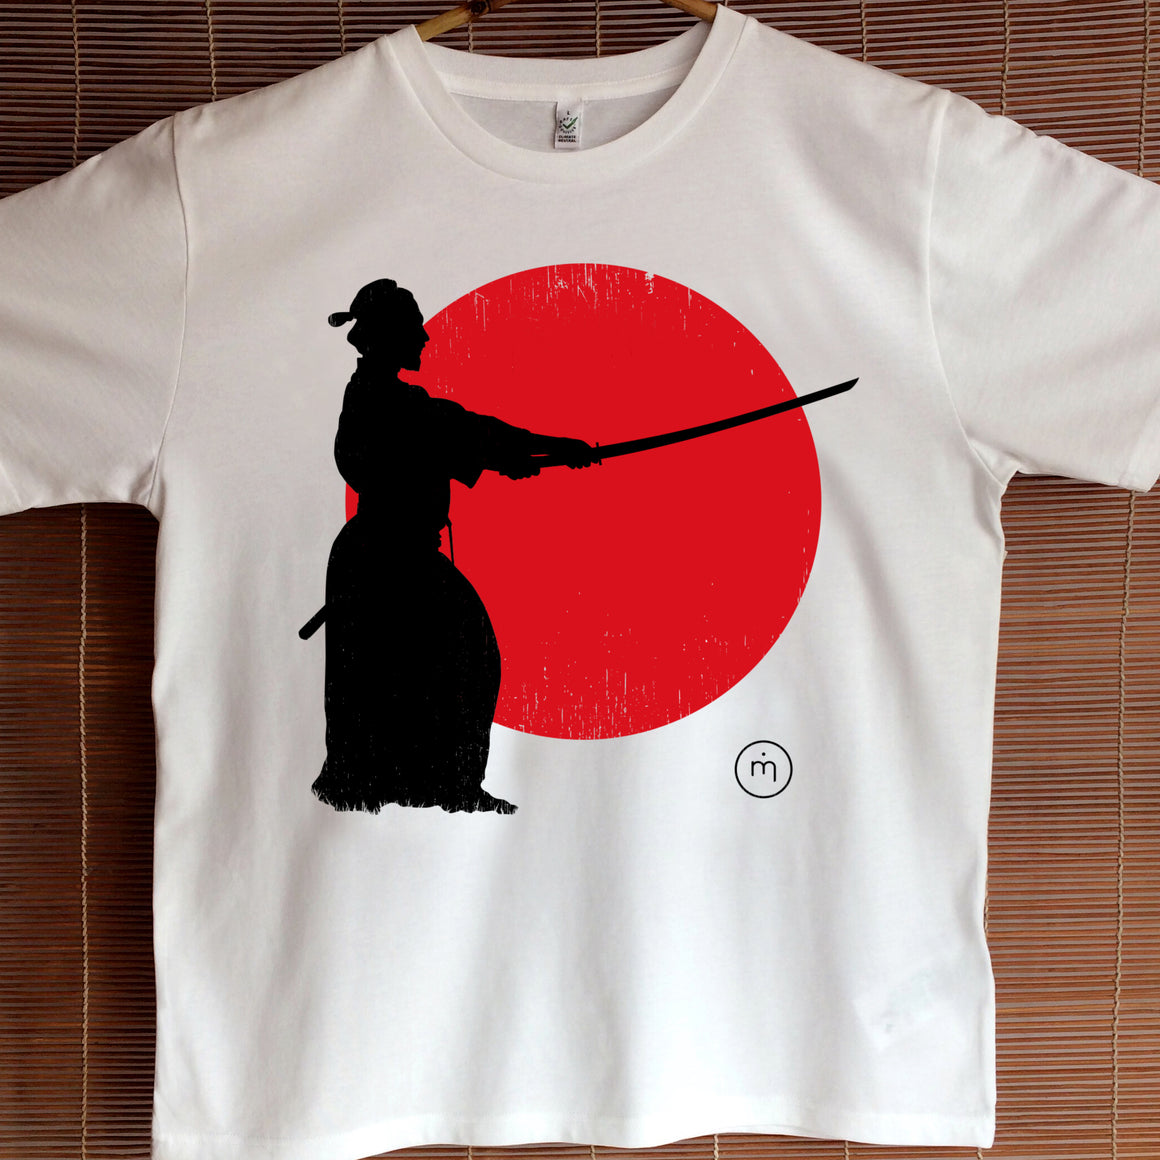 Mero Retro Samurai Sunset Fairtrade organic cotton T-shirt on male model